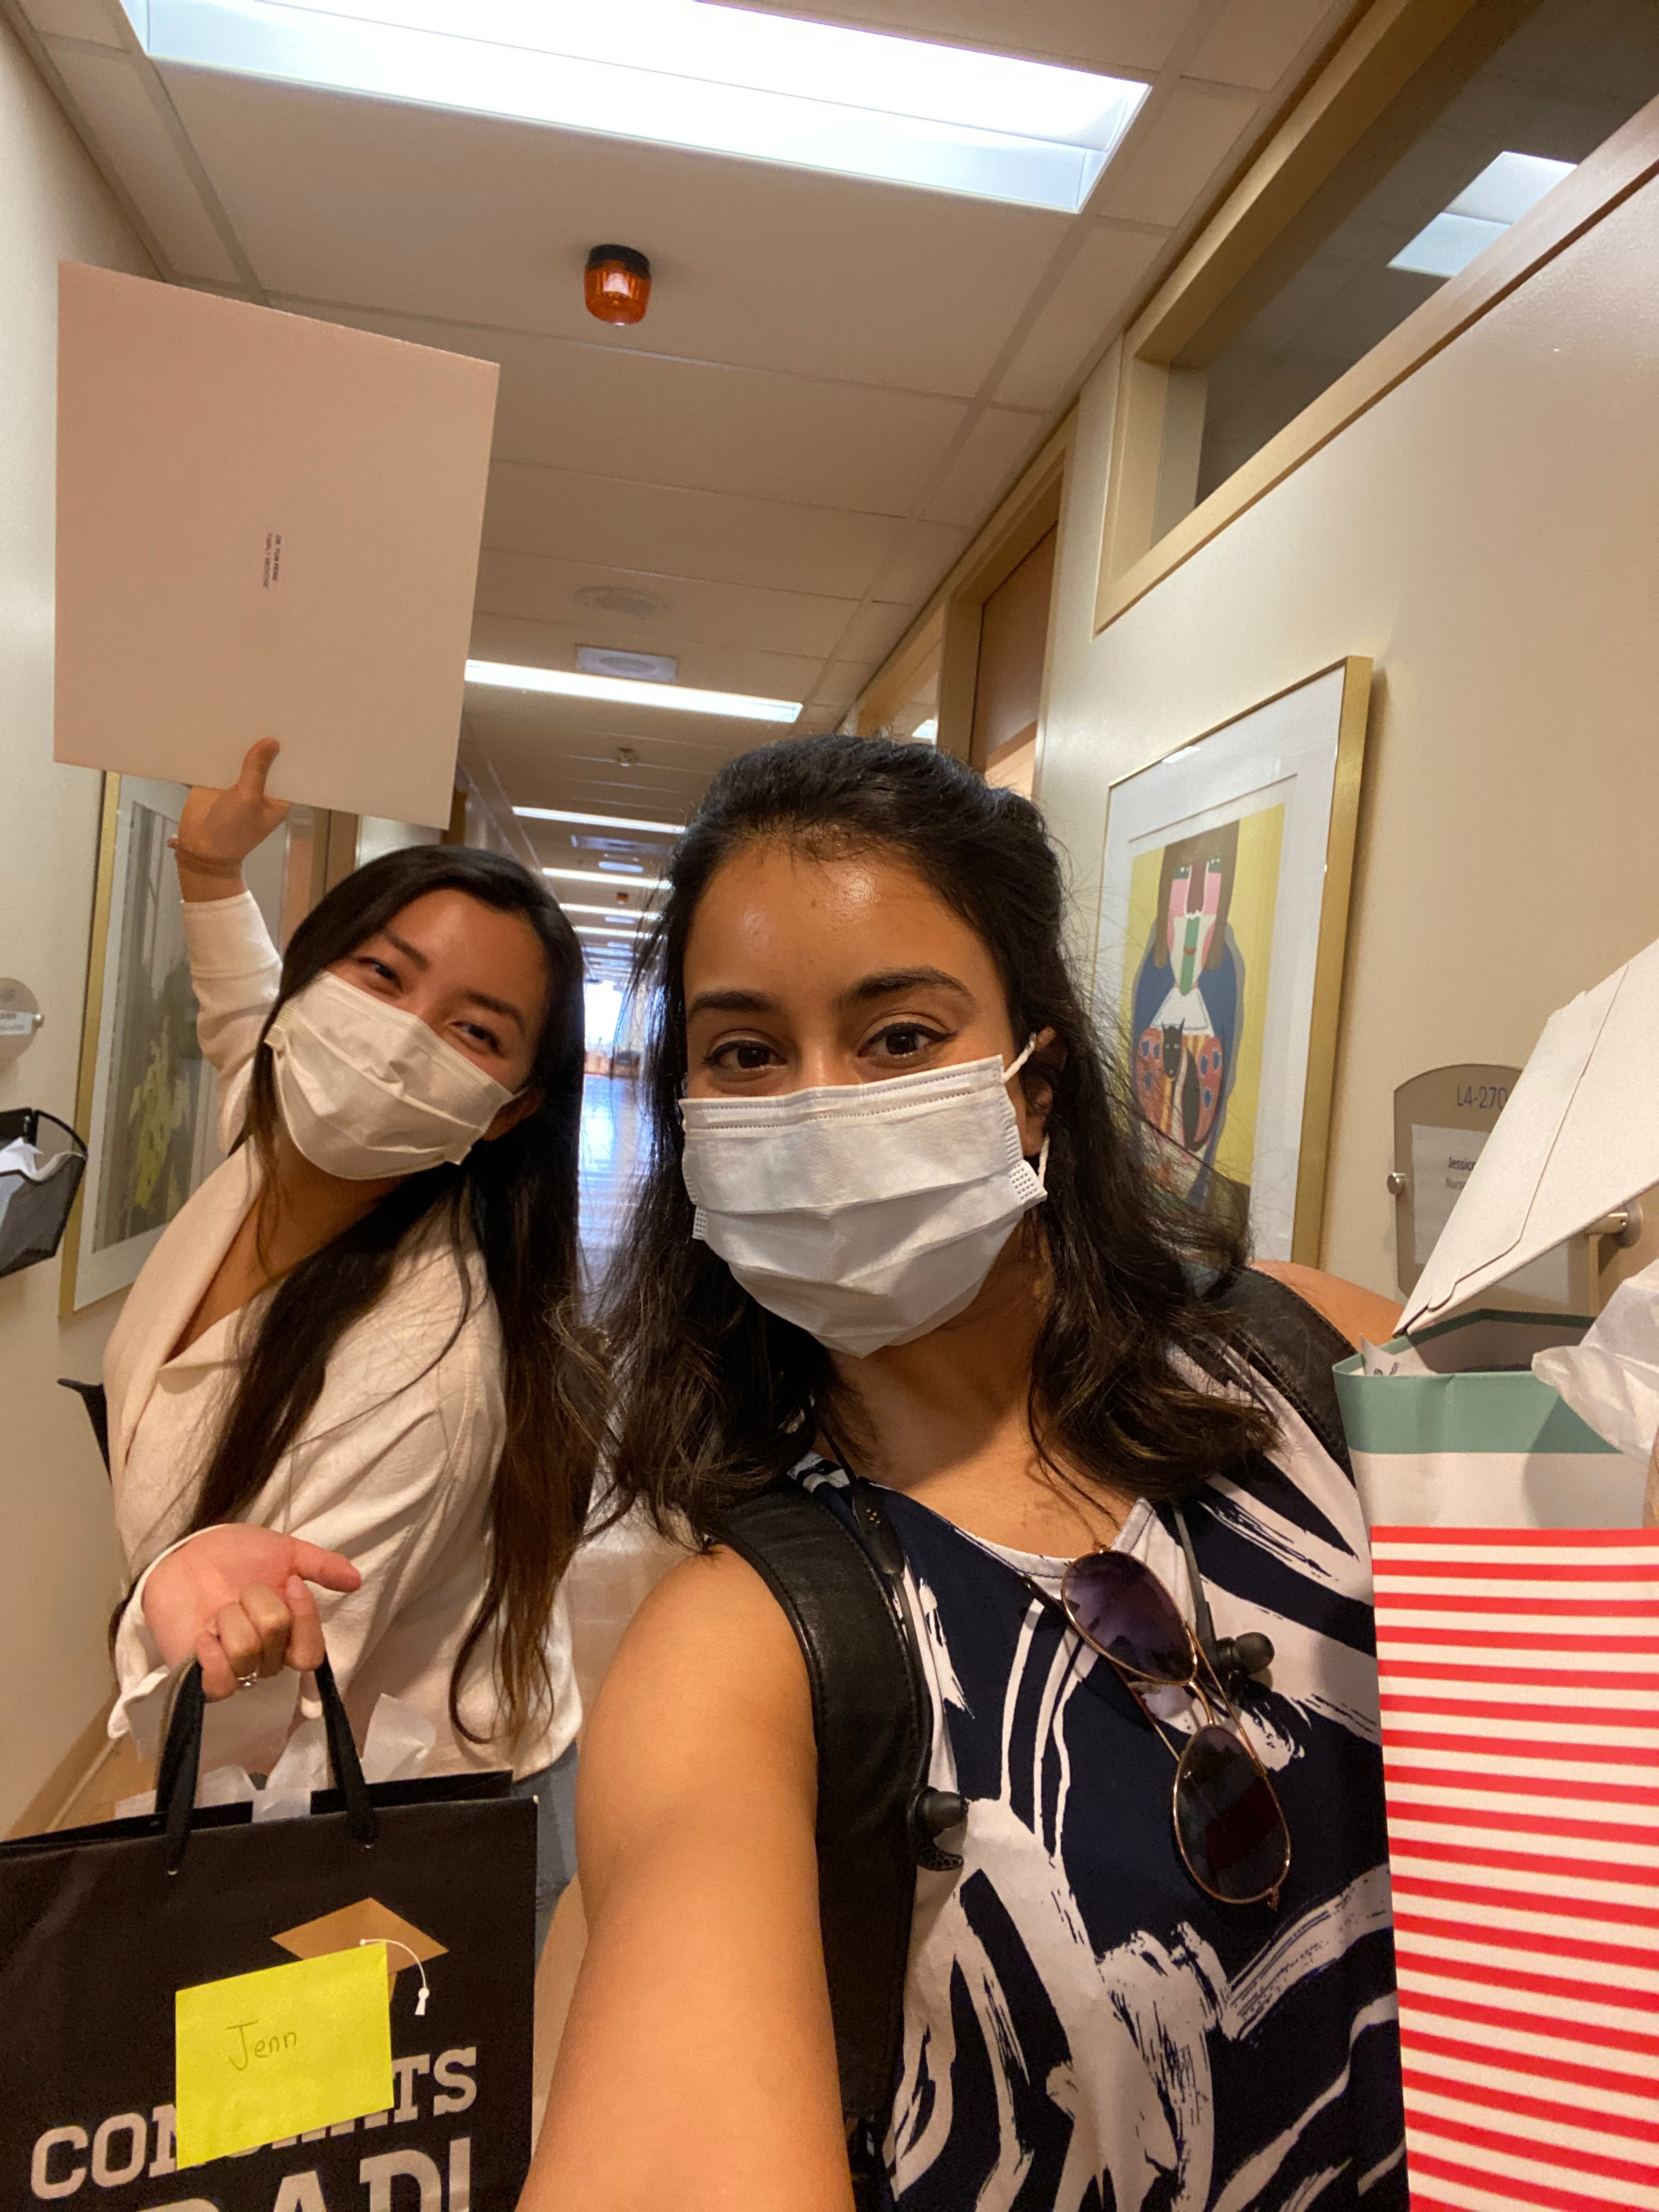 Two women in a selfie image standing in a hallway holding gift bags and evelopes. they are wearing masks and looking at the camera